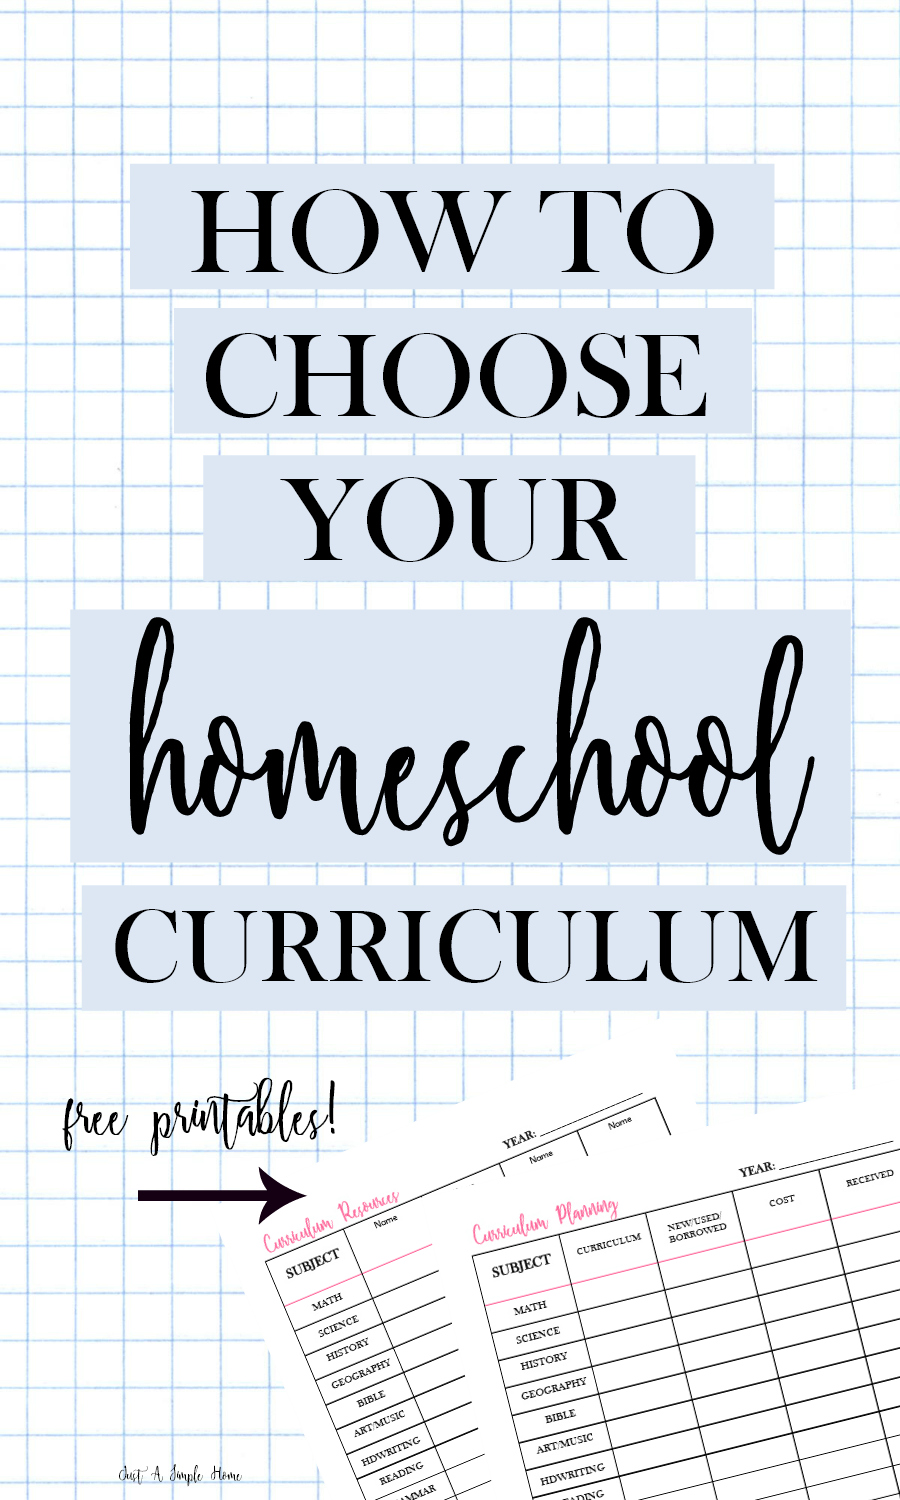 How To Choose Your Homeschool Curriculum - 10 Days of Homeschool Planning